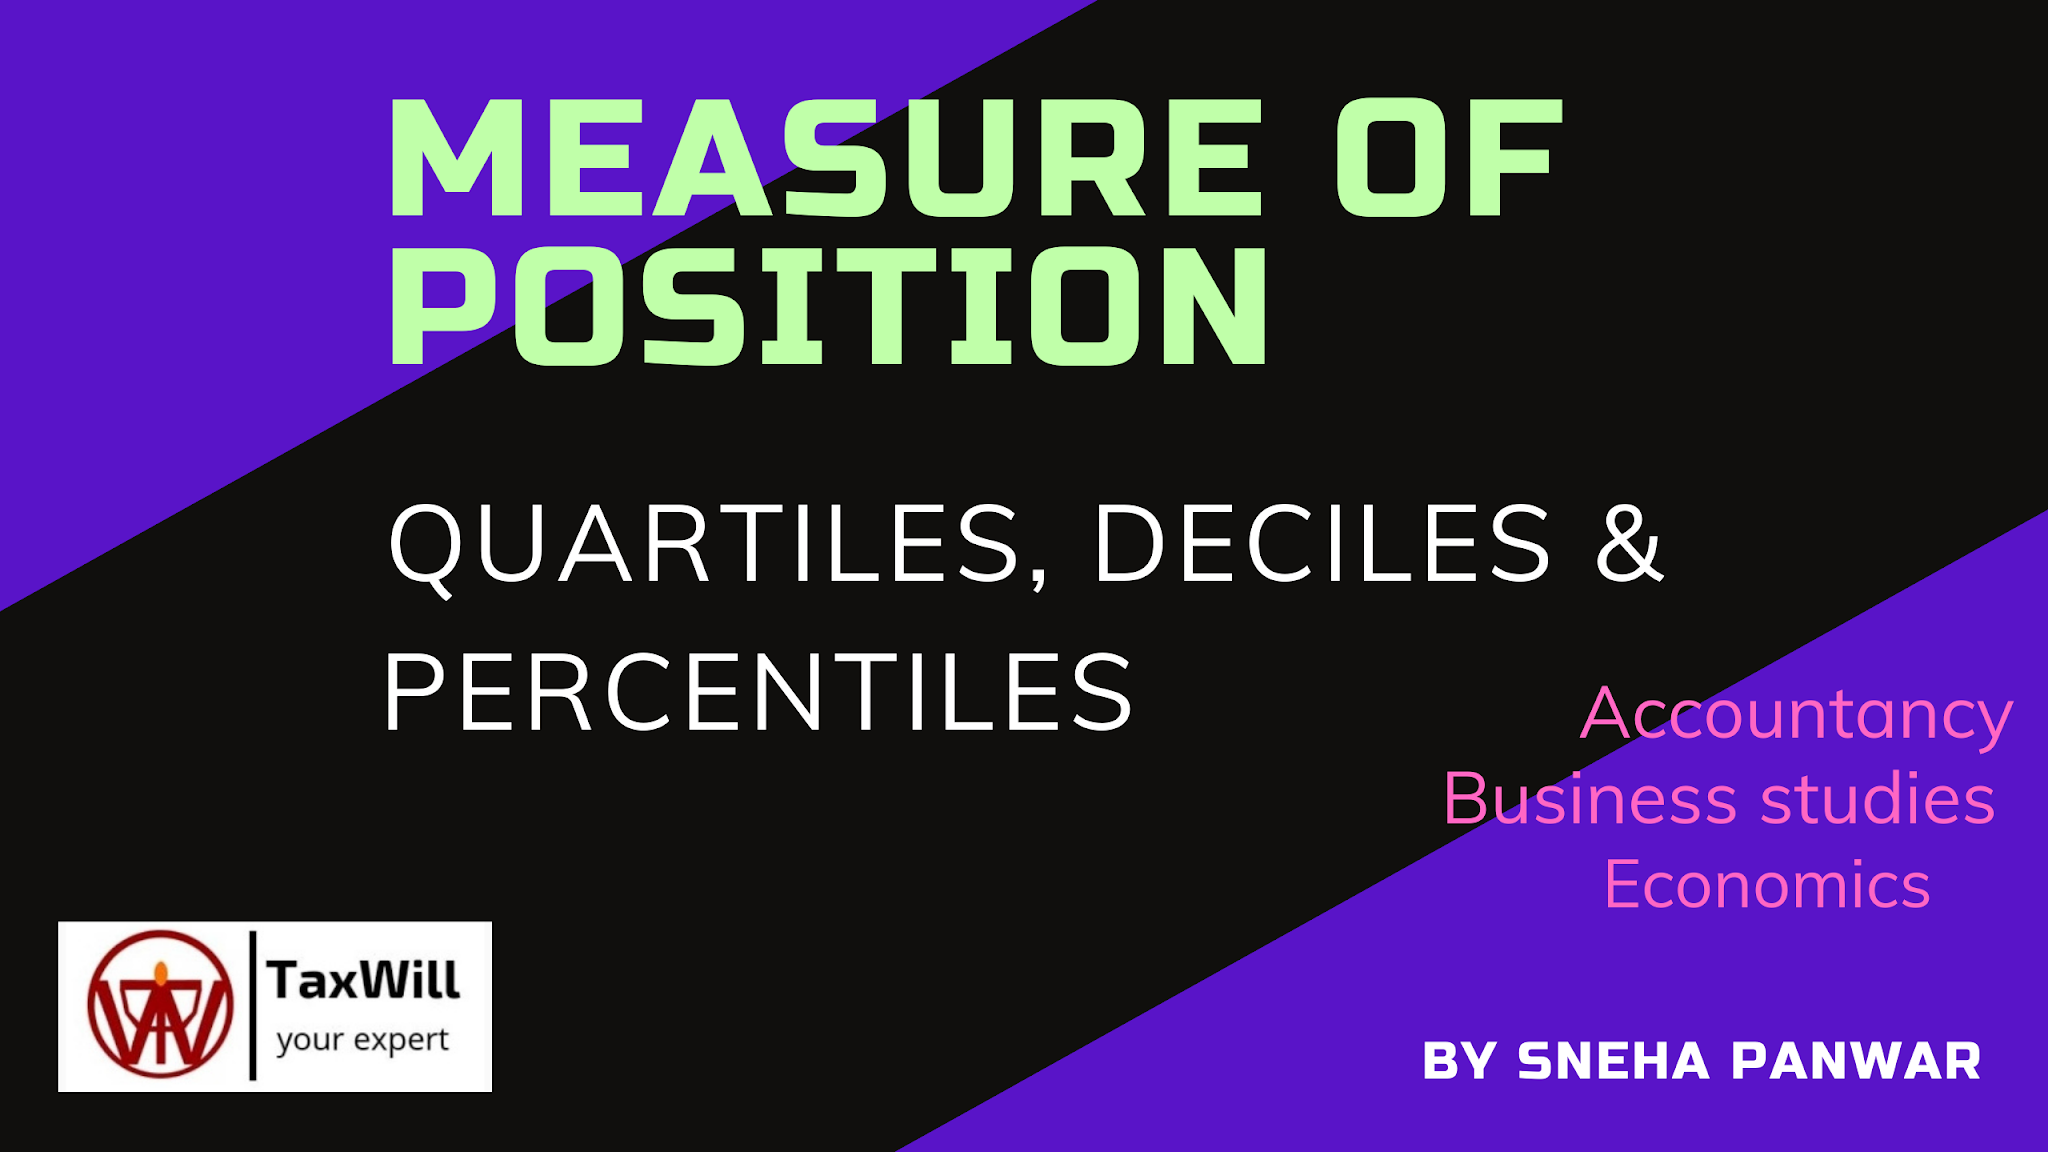 Measure of position